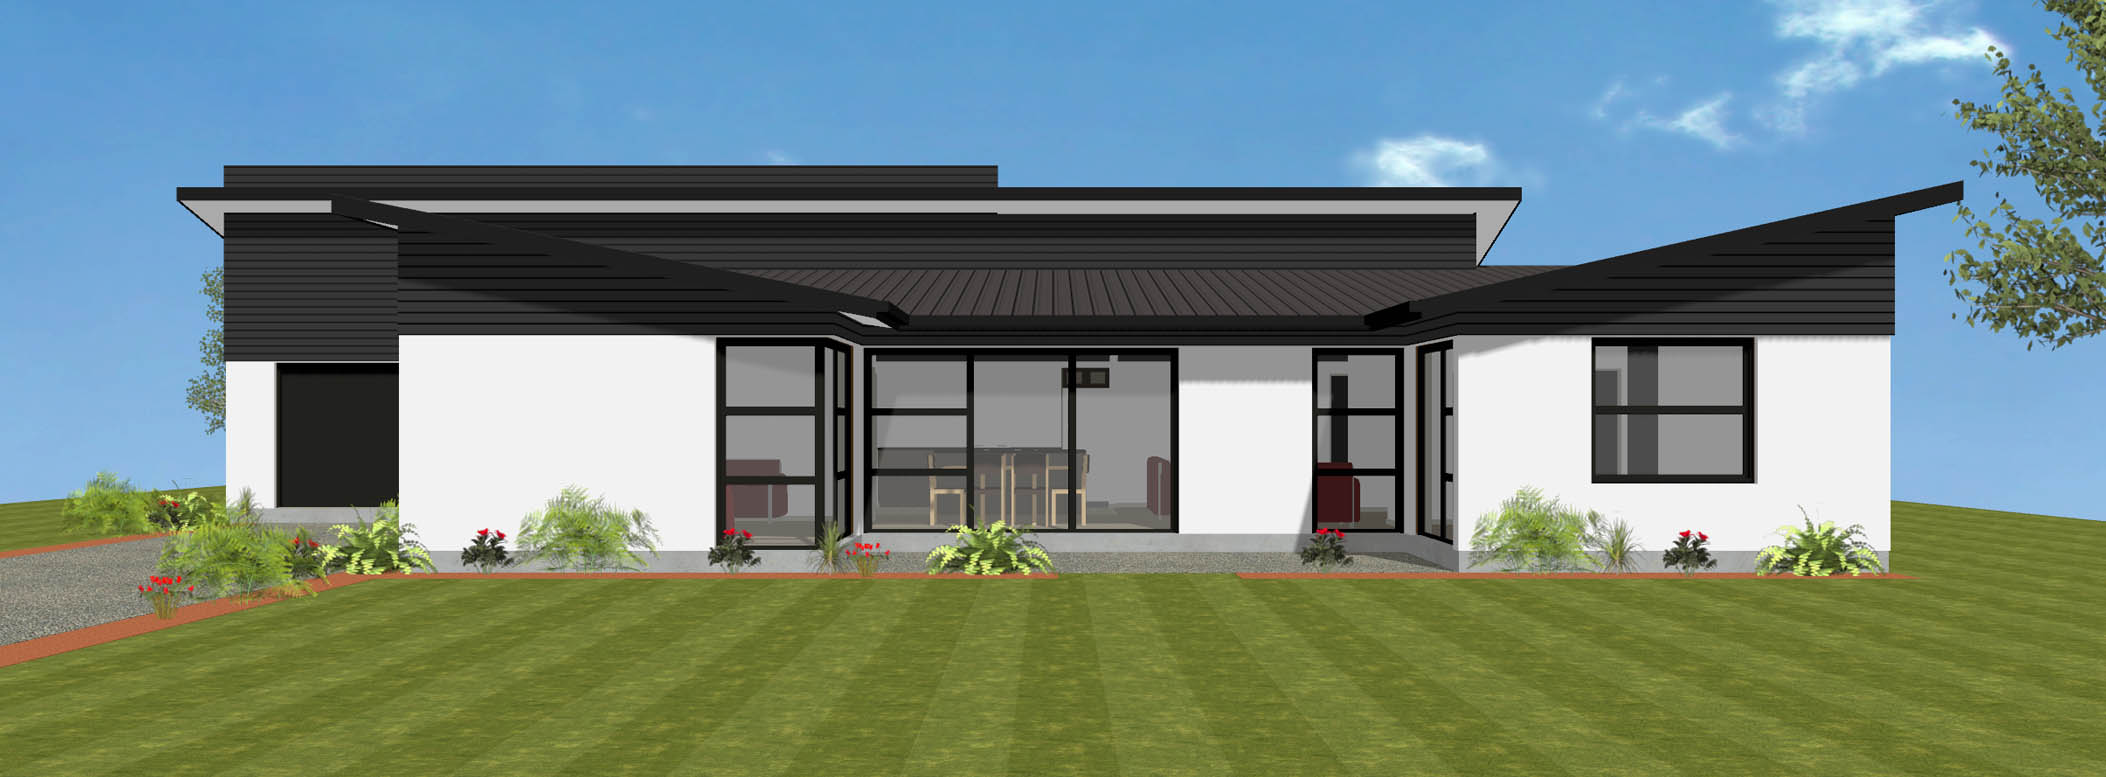 Avonmore new house plan and design wellington kapiti for Room design kapiti